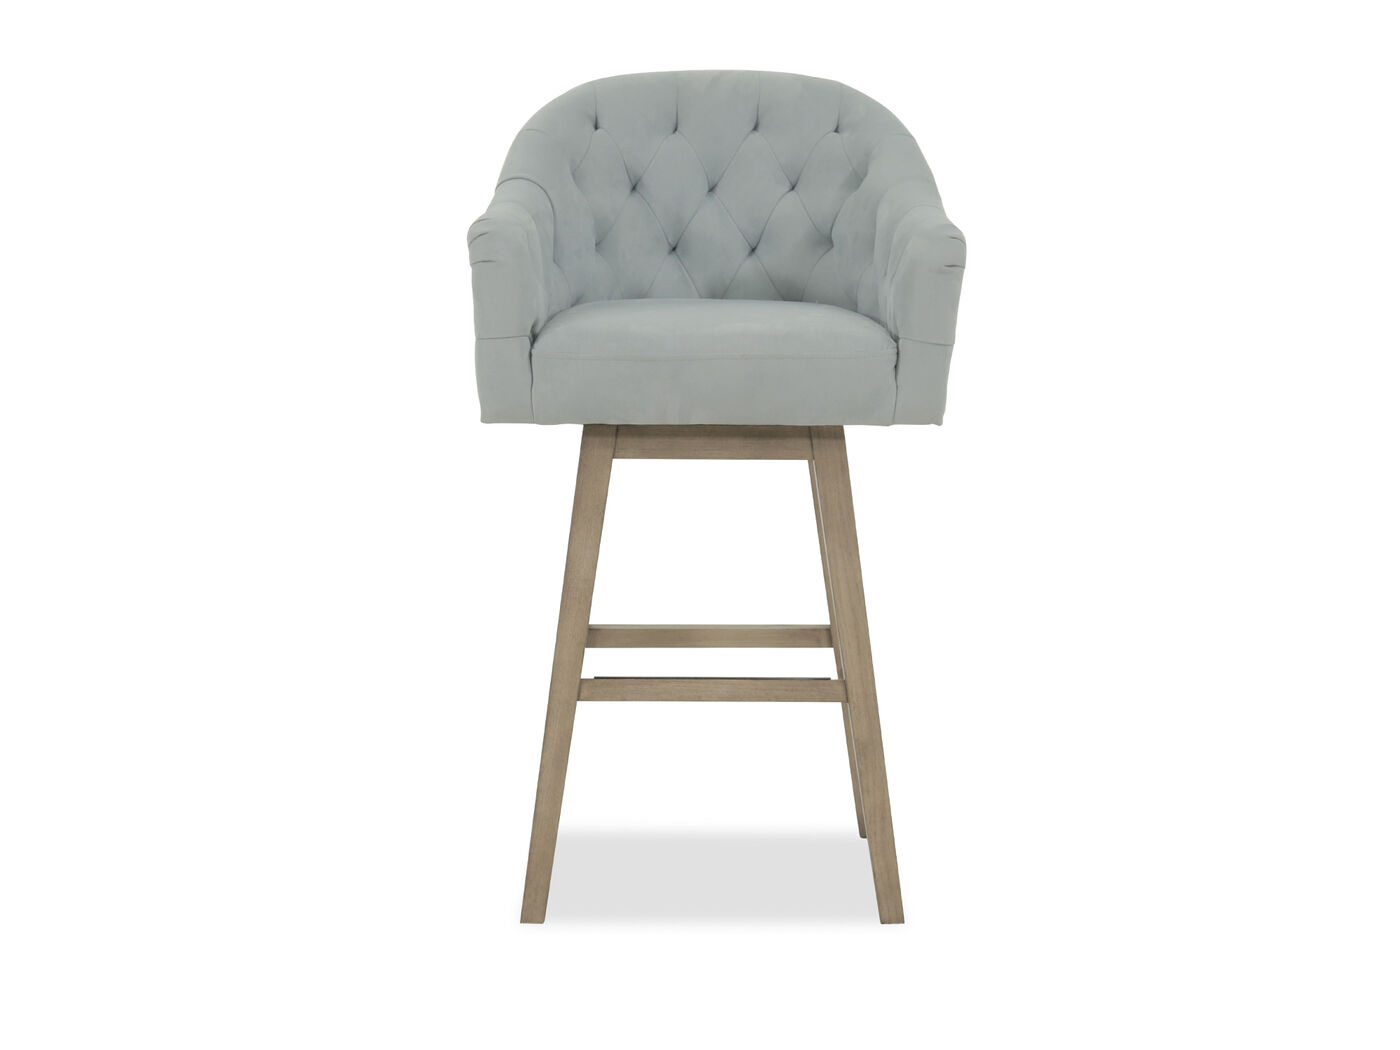 Nailhead Accented 42quot Tufted Bar Stool in Powder Blue  : BLVD Y1313BS99601 from www.mathisbrothers.com size 1333 x 1000 jpeg 38kB